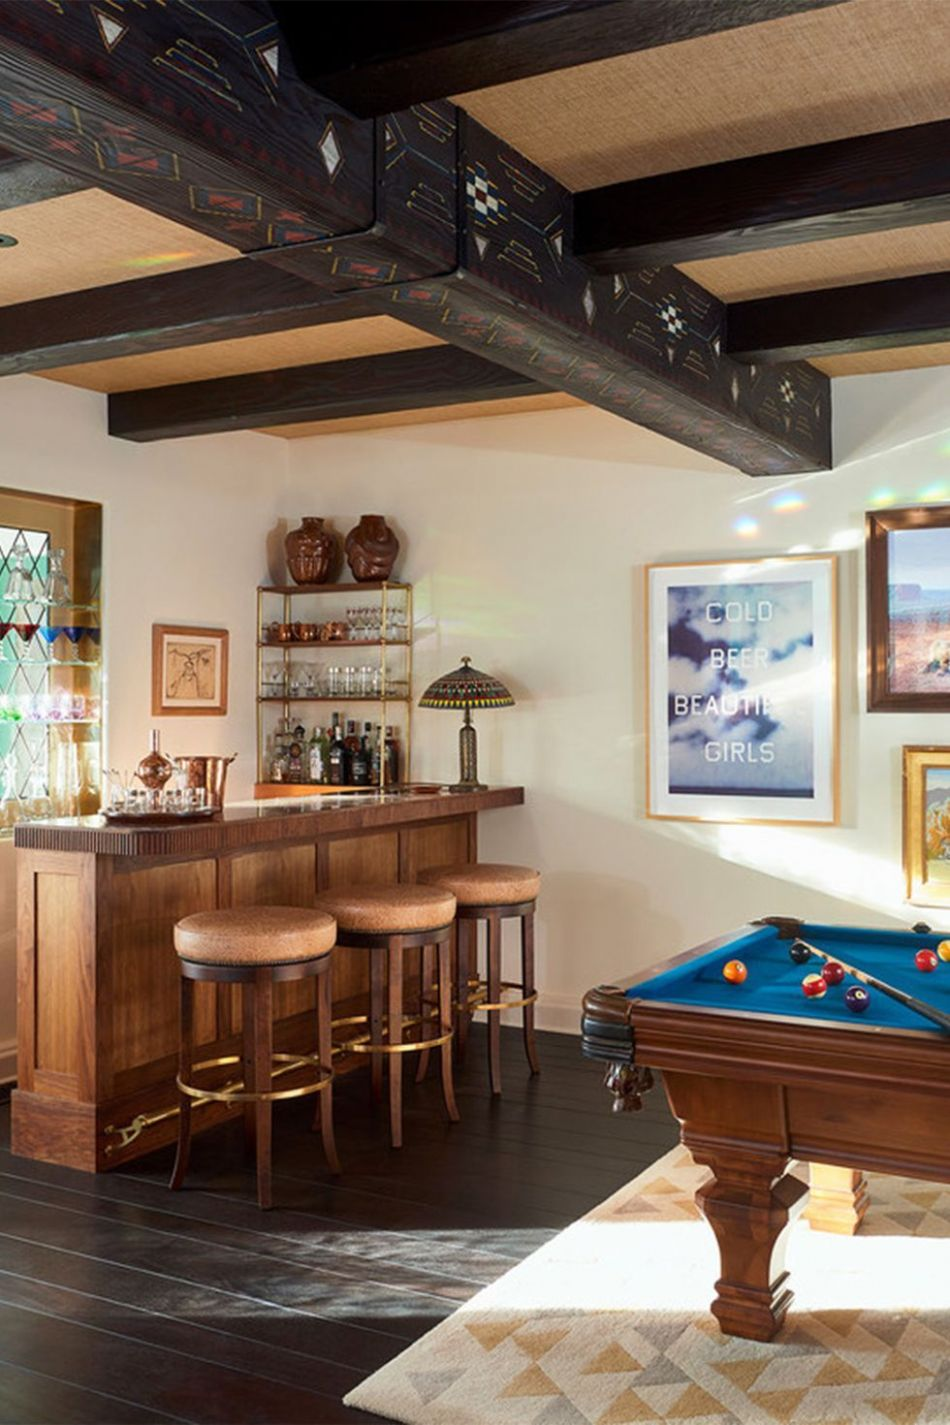 12 Epic Game Room Ideas - How to Design a Home Entertainment Space